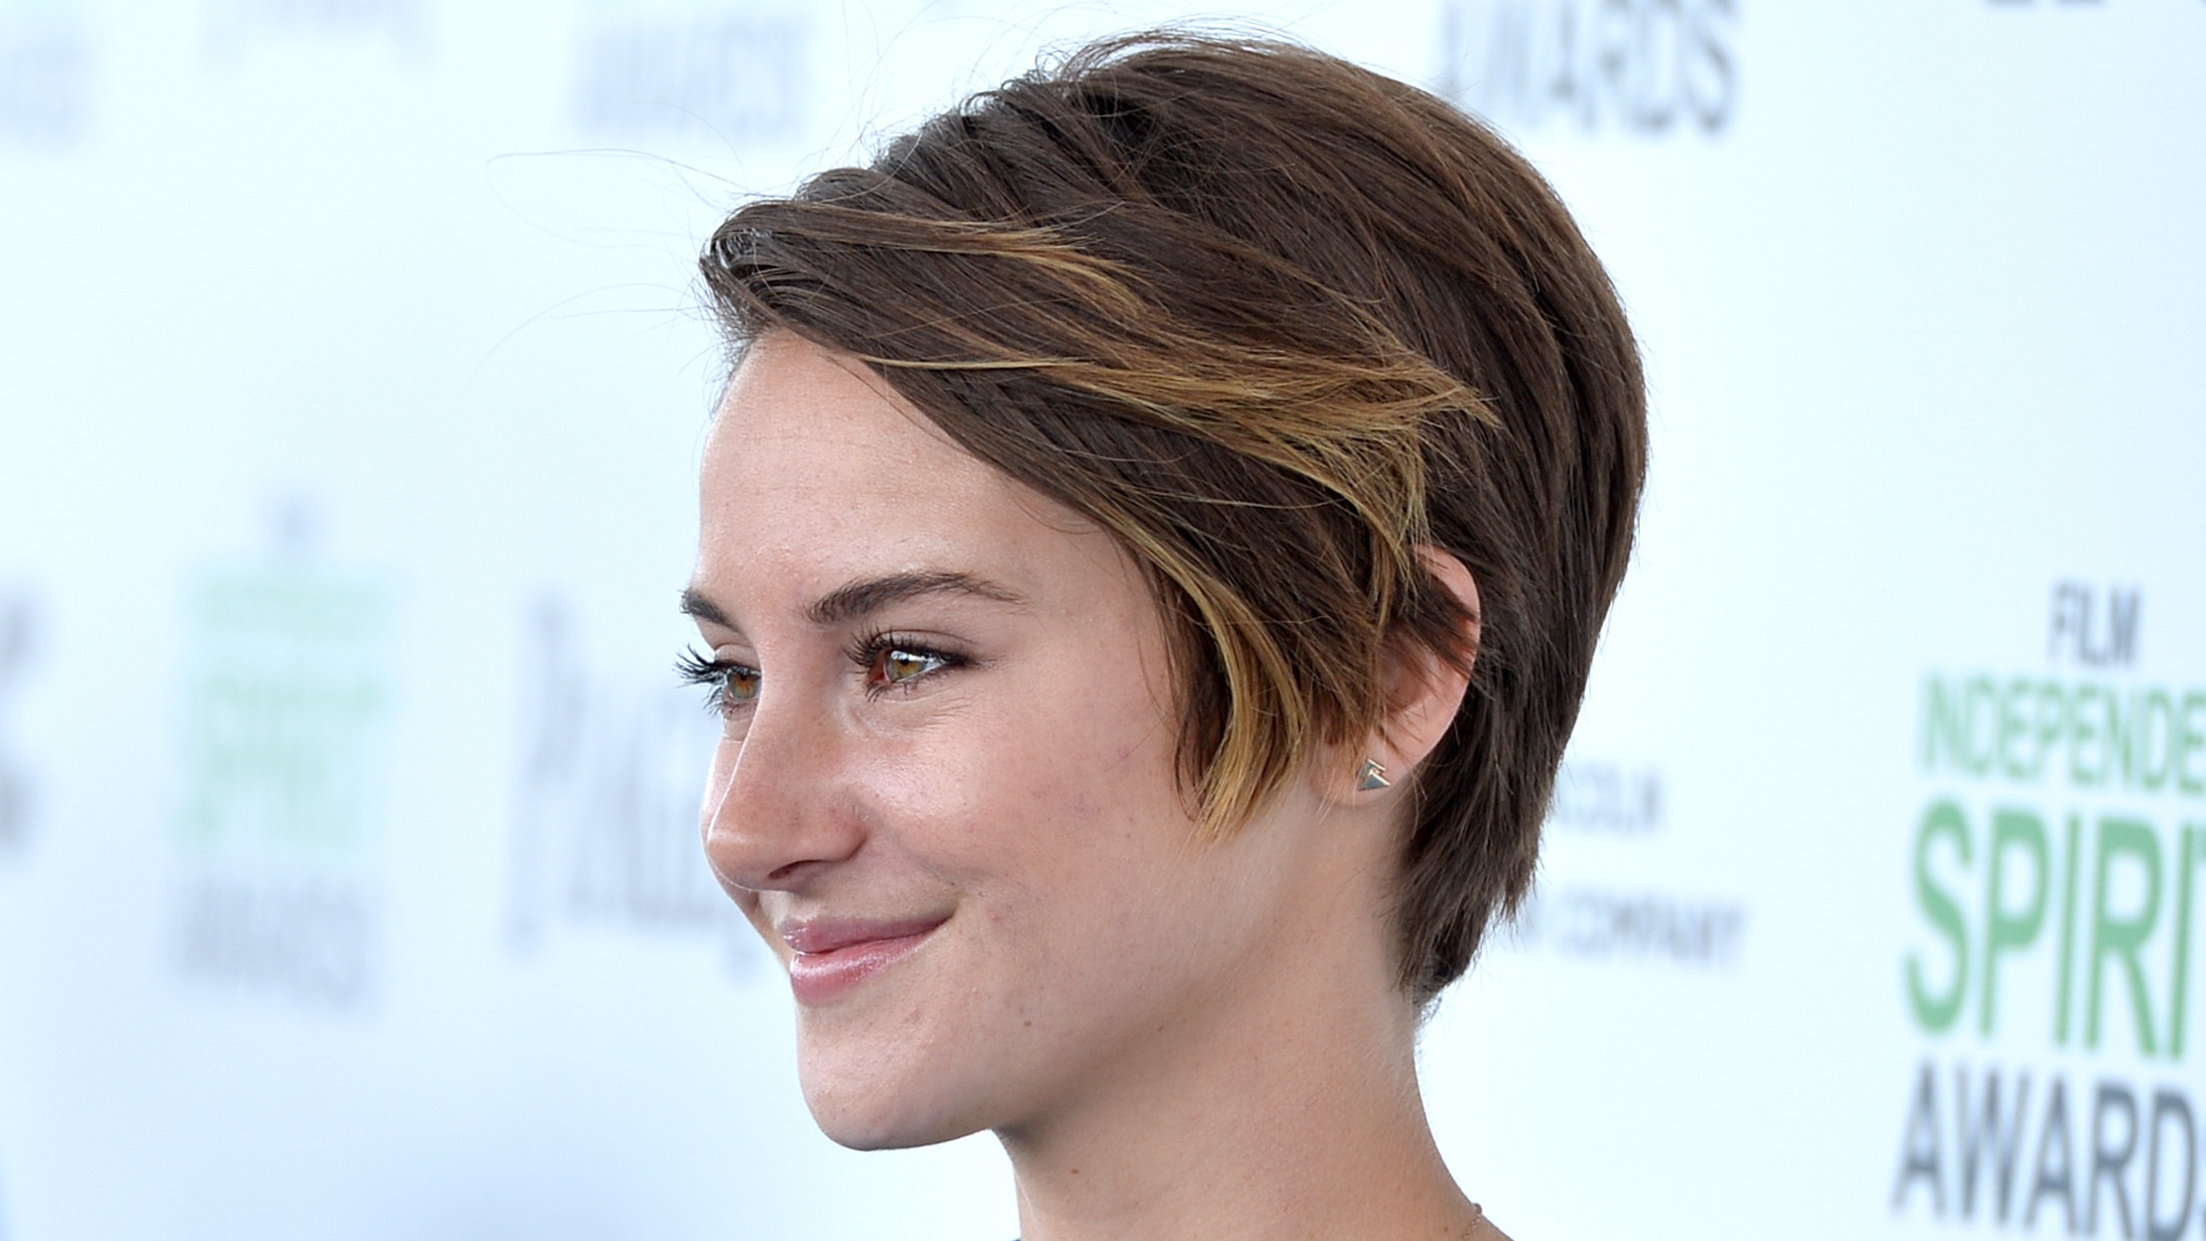 From Action Hero To Teenage Nerd, Shailene Woodley Has Range